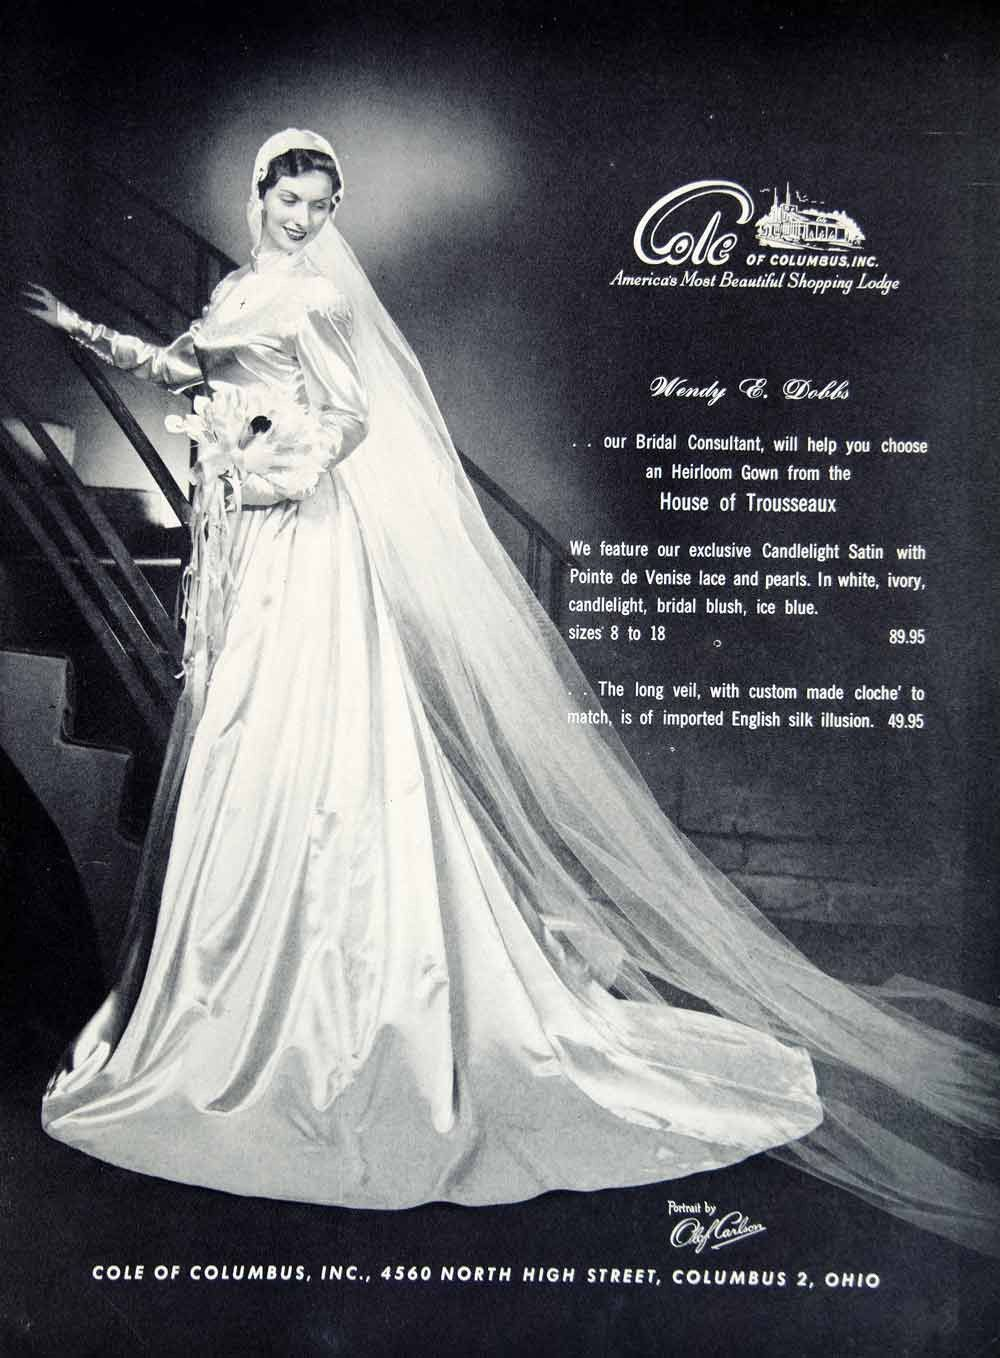 1949 Ad Wedding Dress Bride Cloche Veil Cole Of Columbus Wendy E Dobb Beautiful Beach Wedding Bridal Gowns Vintage Bridal Magazine Cover